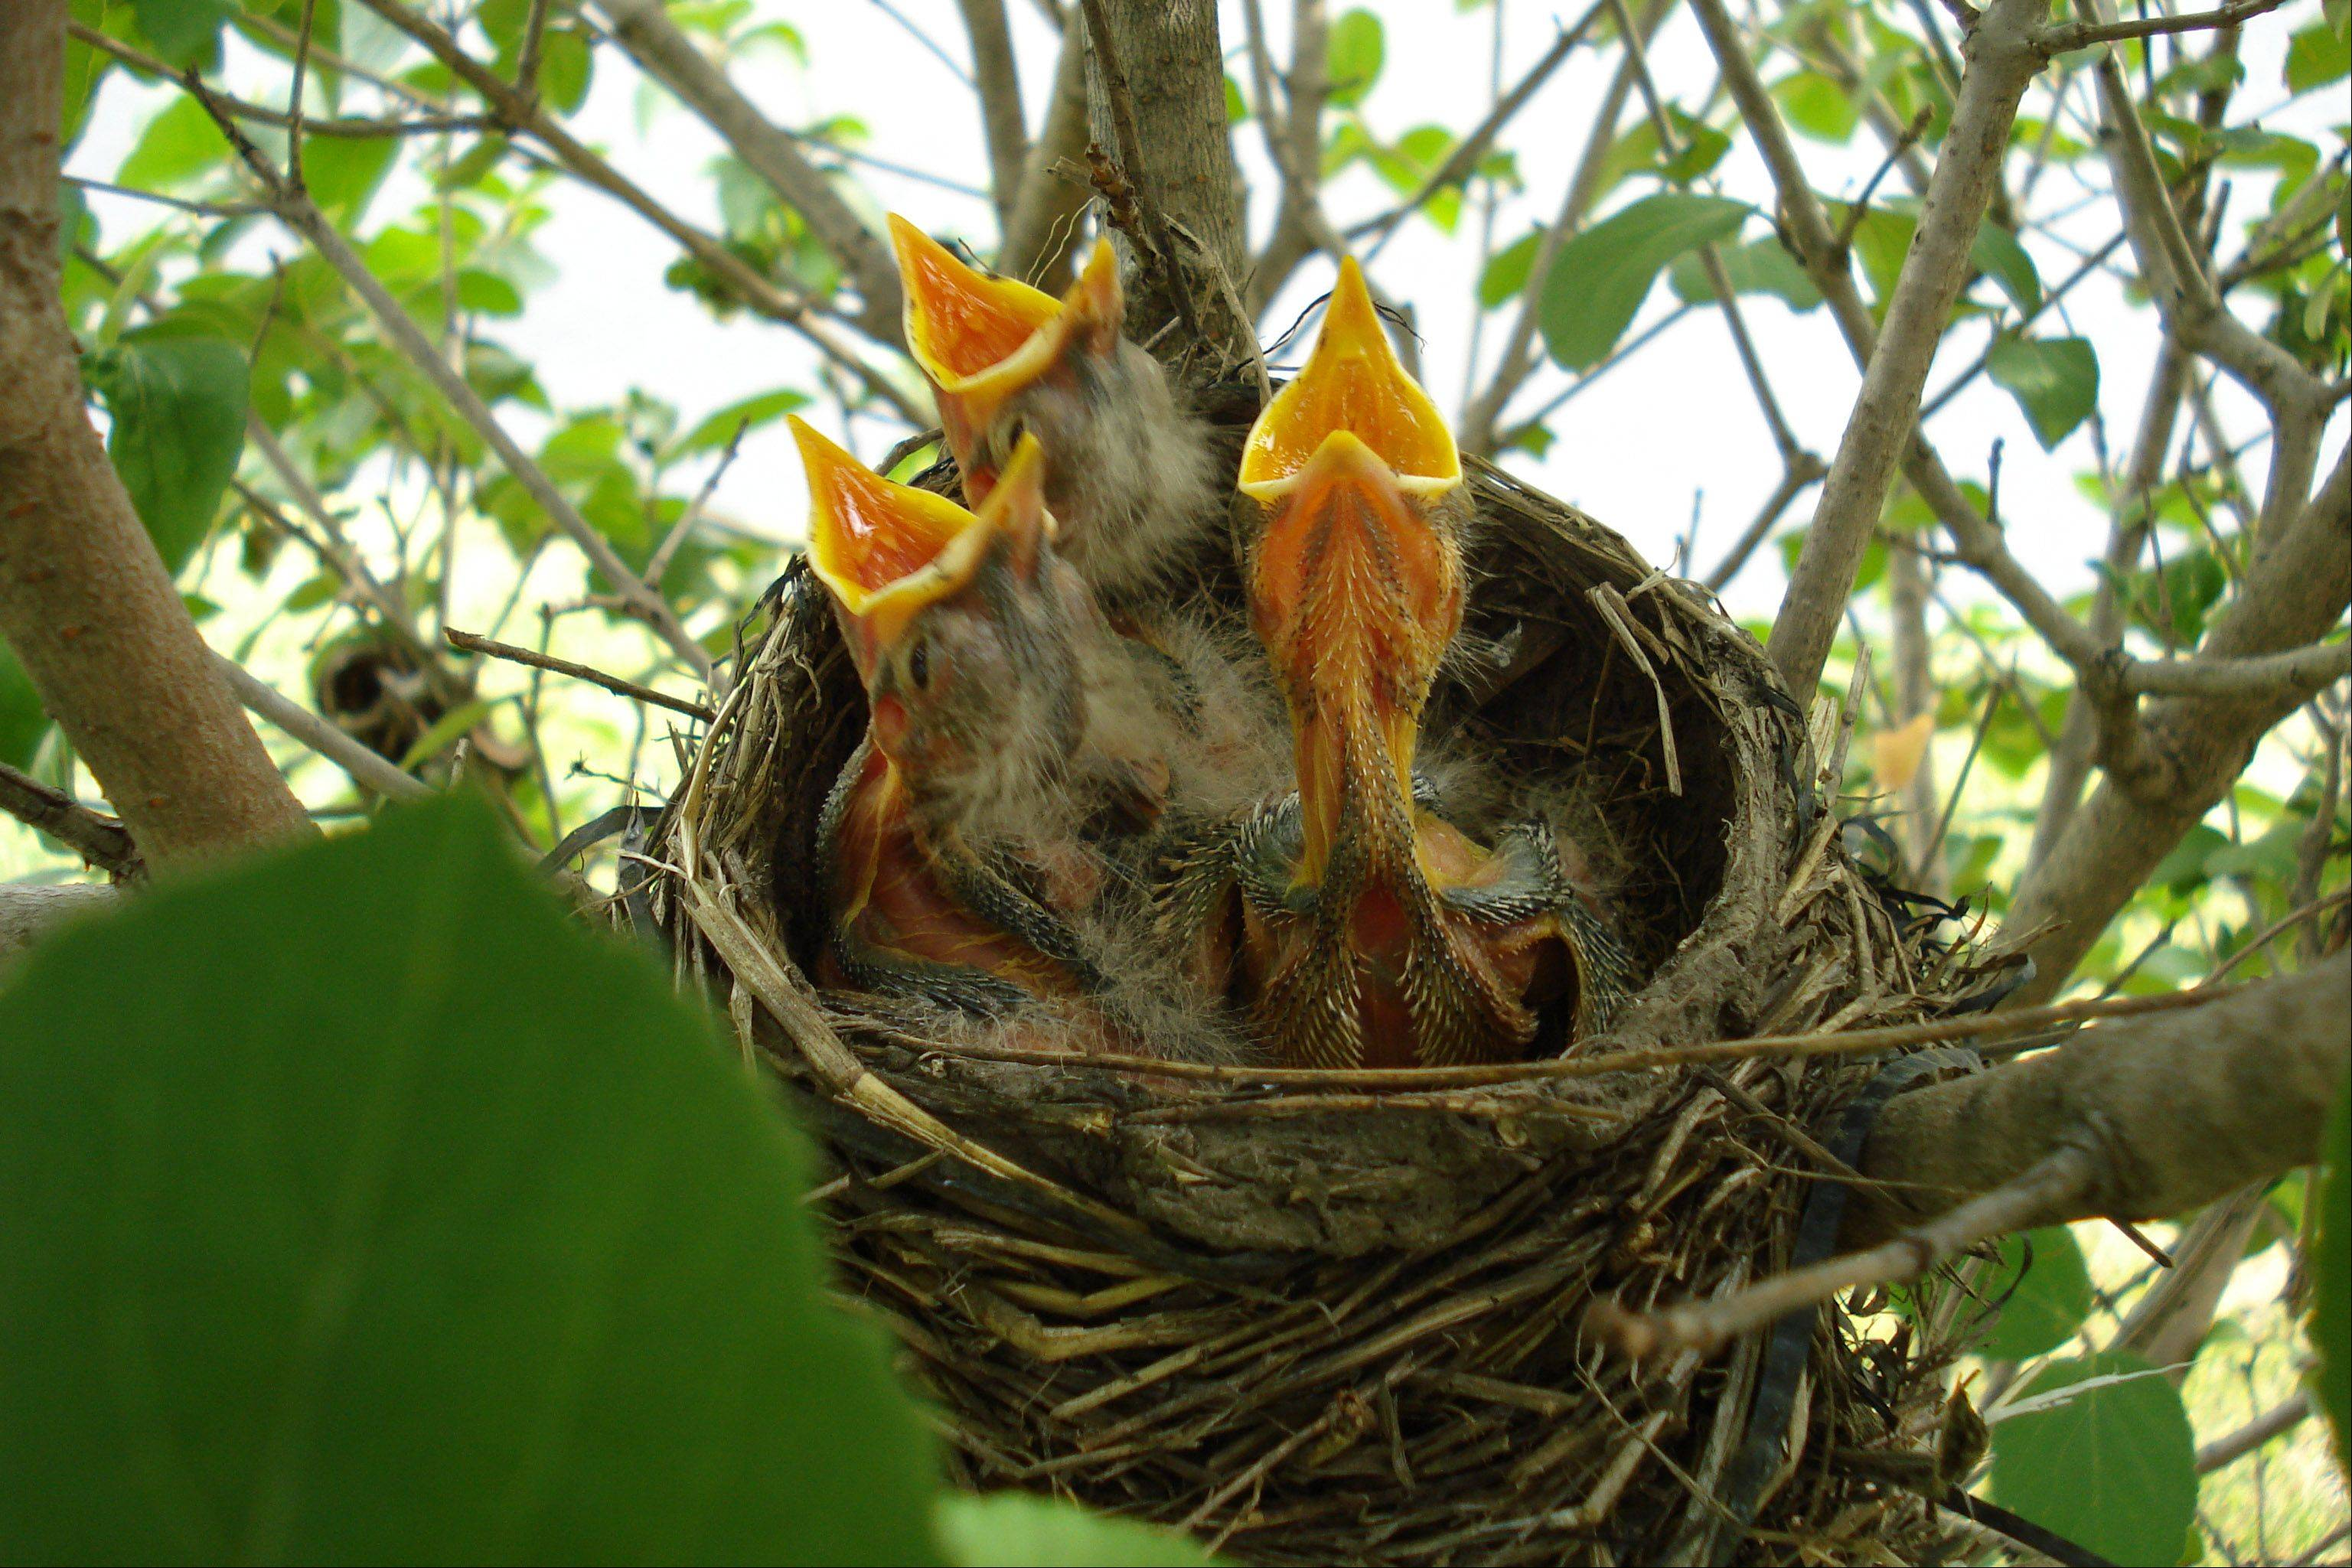 I took the photo of these beautiful baby robins that nest in our bush in front of our house every year.